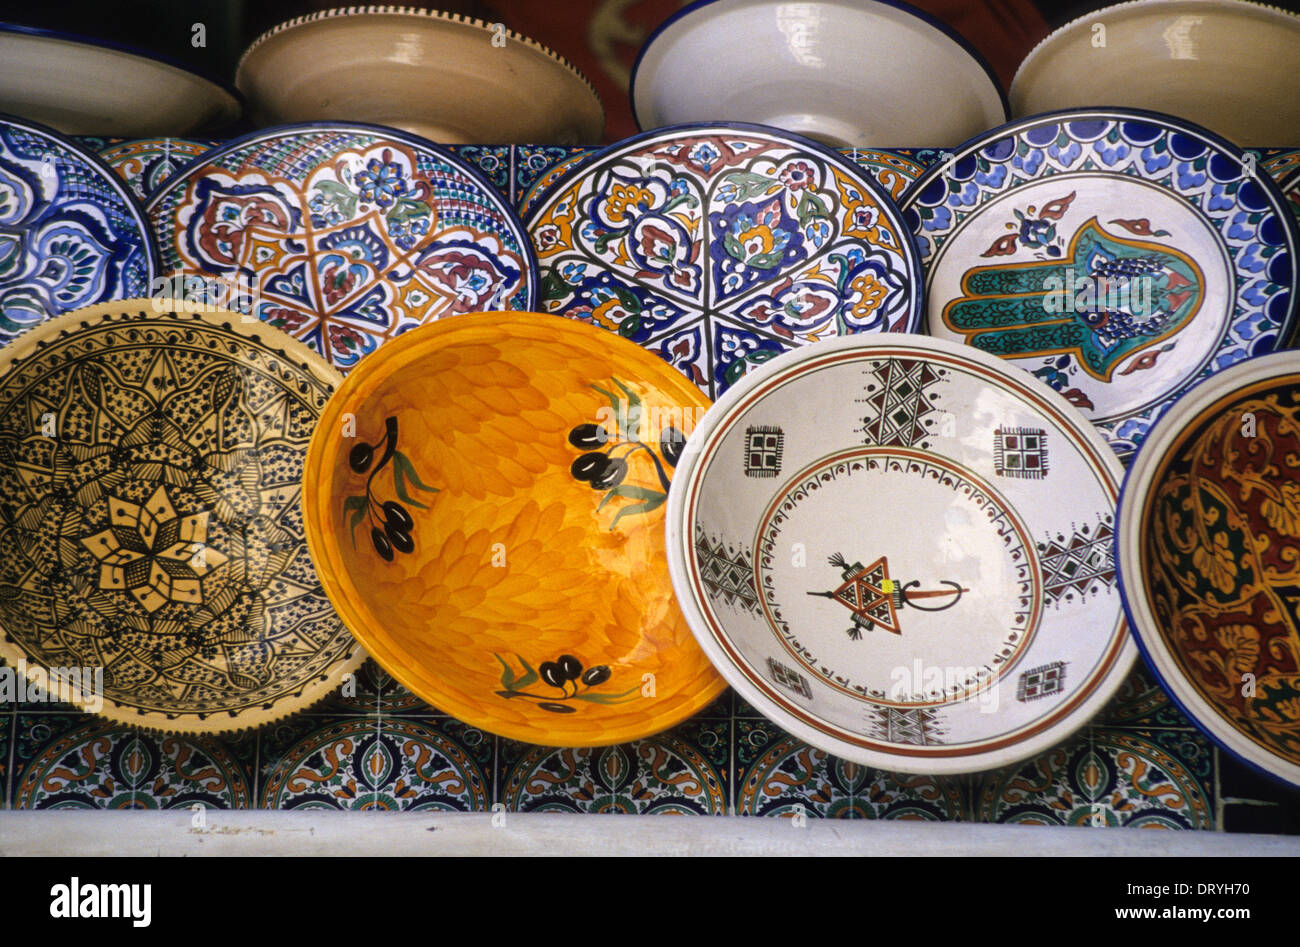 Variety of Designs on Ceramic Plates Bowls. & Ceramics Nabeul Tunisia. Variety of Designs on Ceramic Plates ...